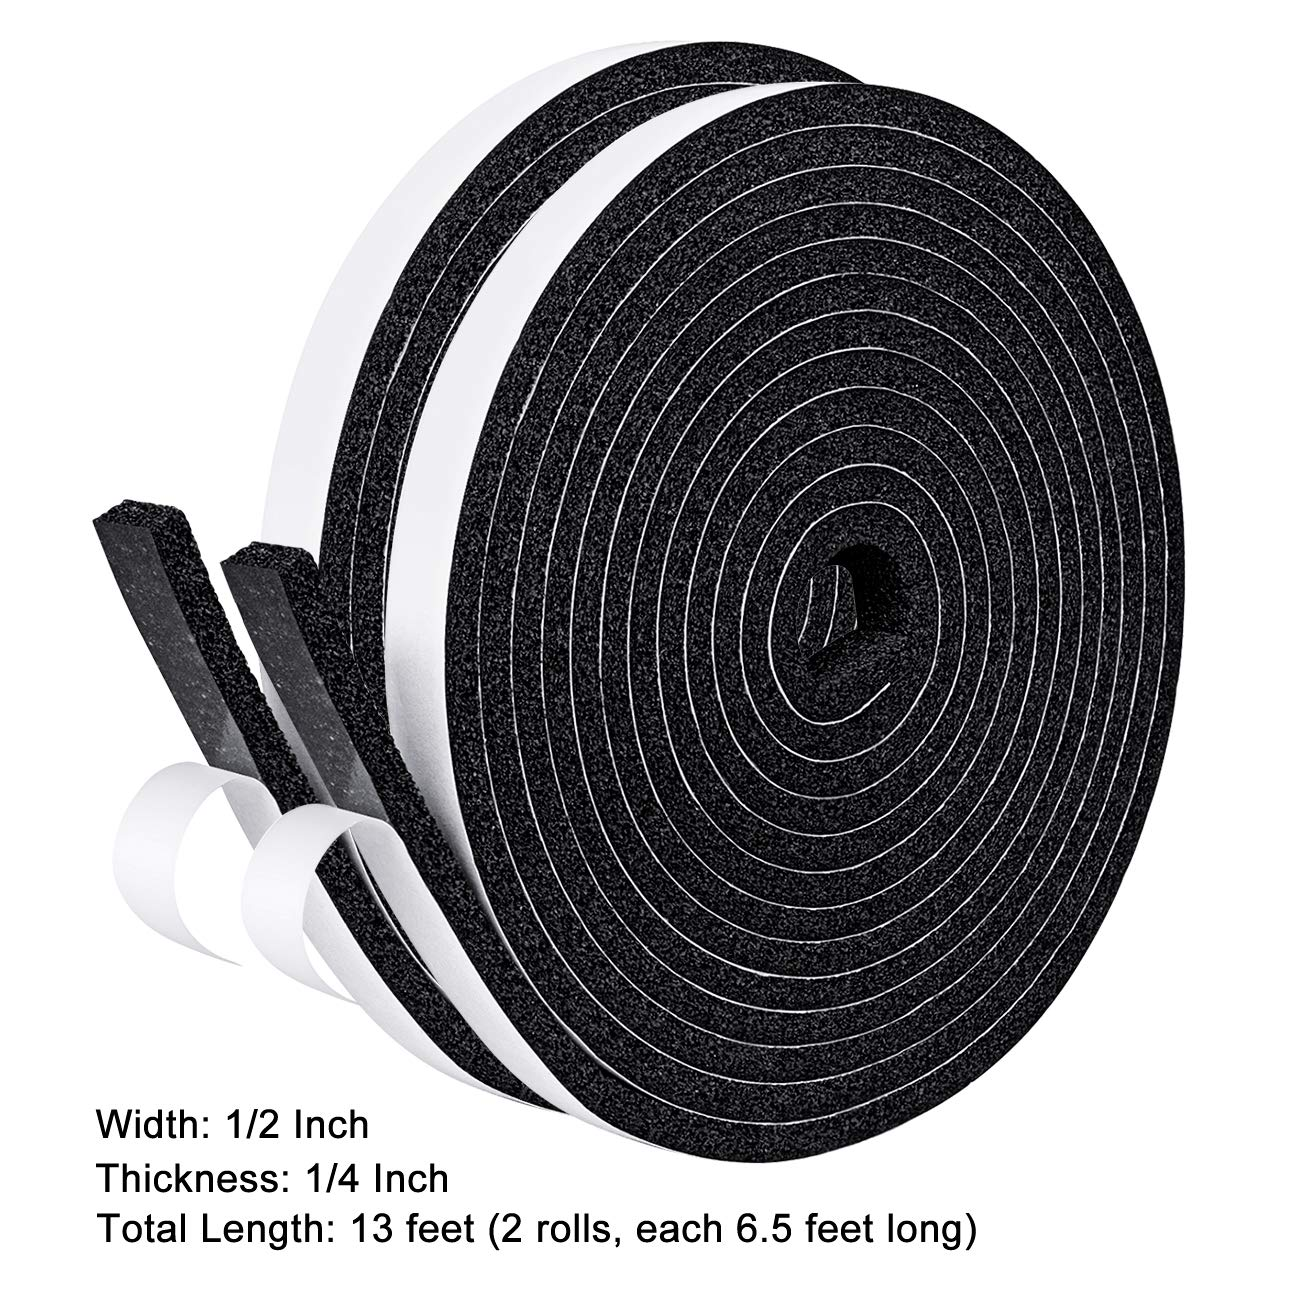 10FT USB 2.0 A to B Printer Scanner Cord for HP Deskjet 6122 6127 6543 6940 6940dt 6980 6980dt 6988 6988dt D1311 D1320 D1330 D1341 D1360 D1368 D1415 D1420 10 Pack Harper Grove Printer Cable